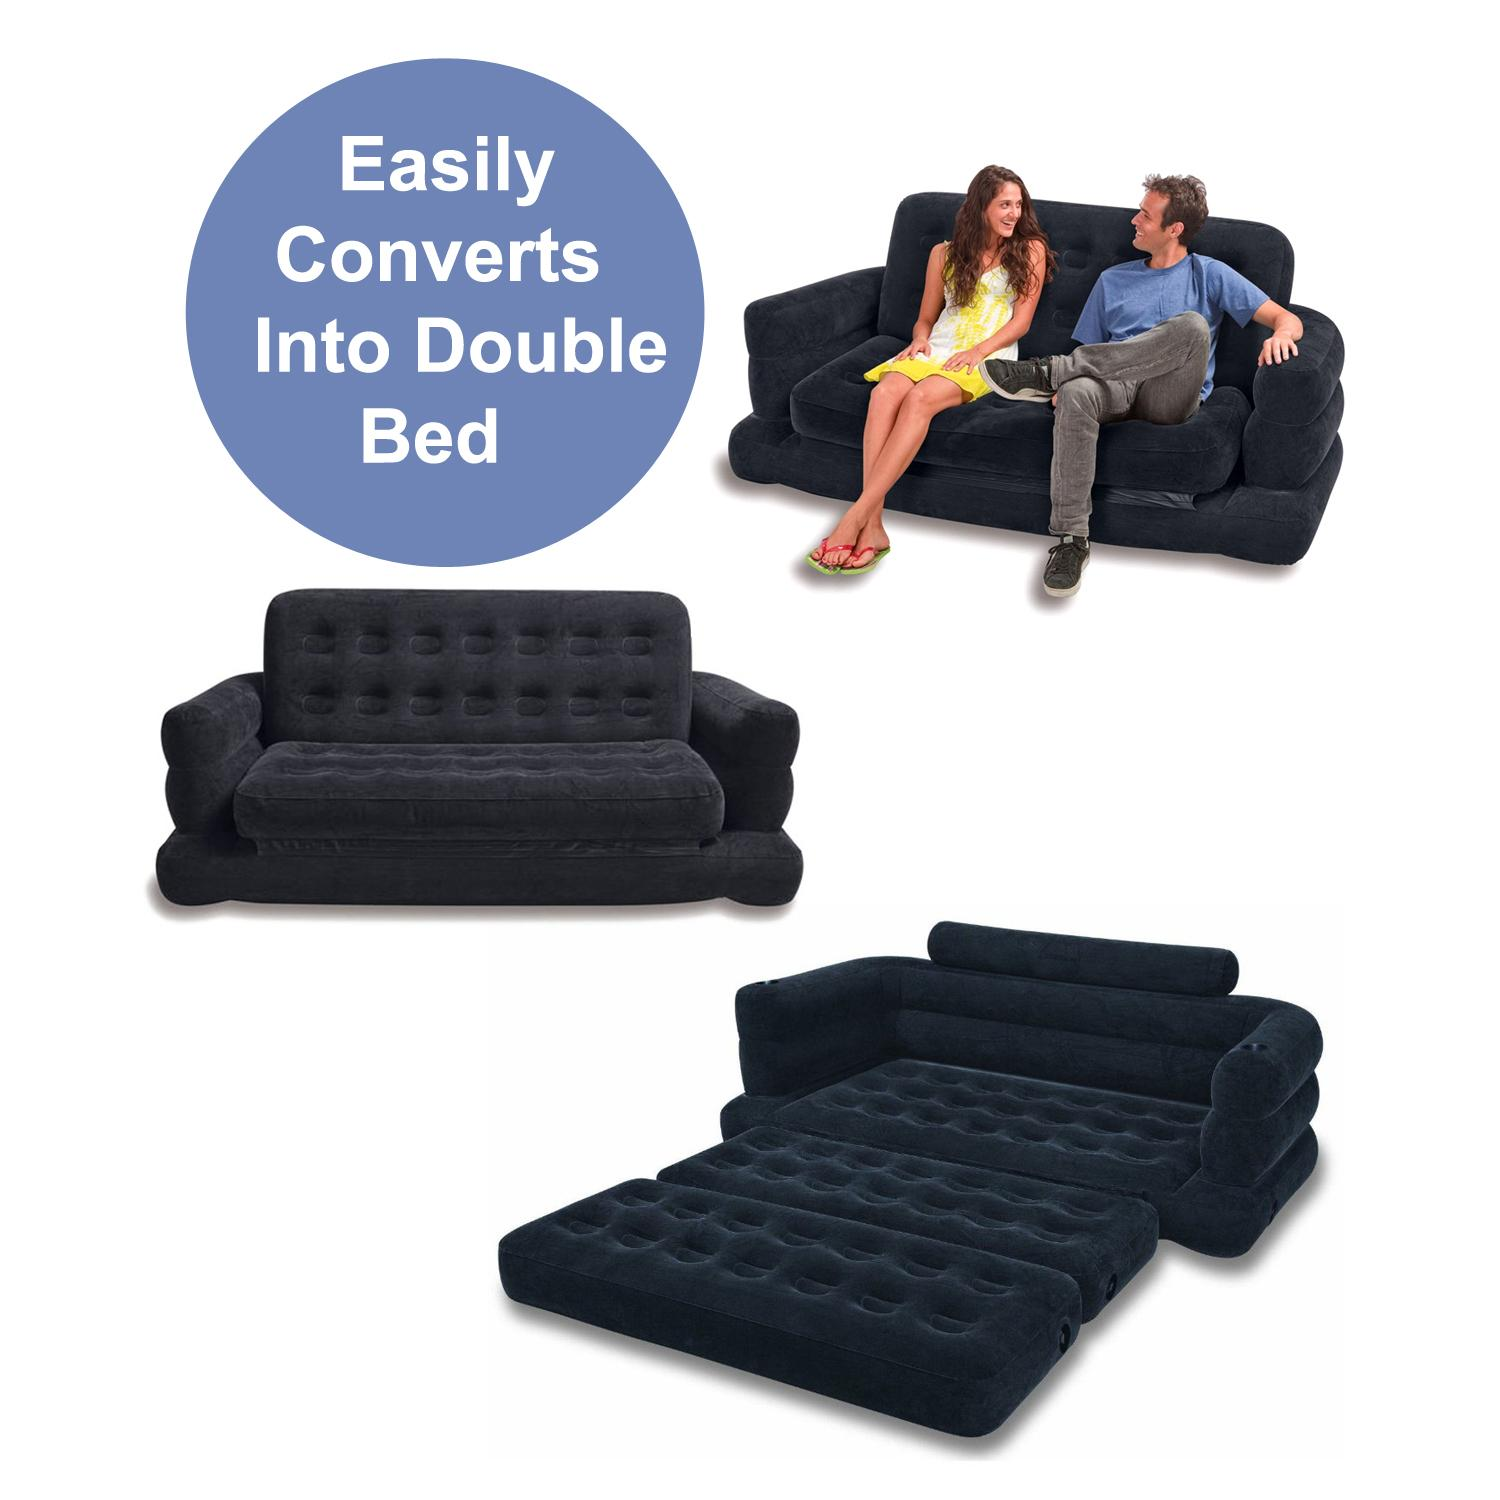 intex sofa inflatable rv sleeper mattress new pull out bed couch settee queen